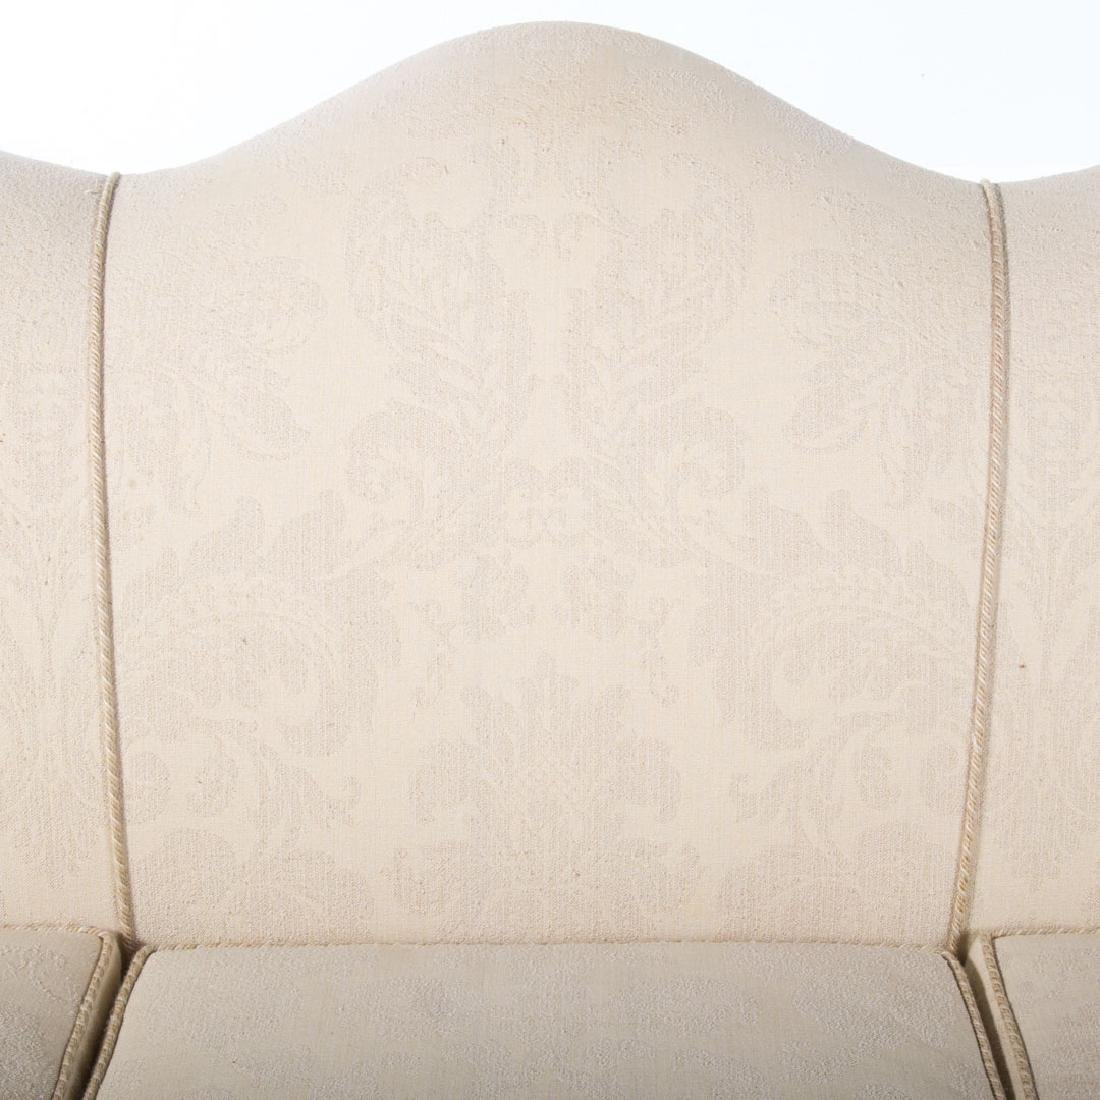 Donghia Contemporary upholstered sofa - 2